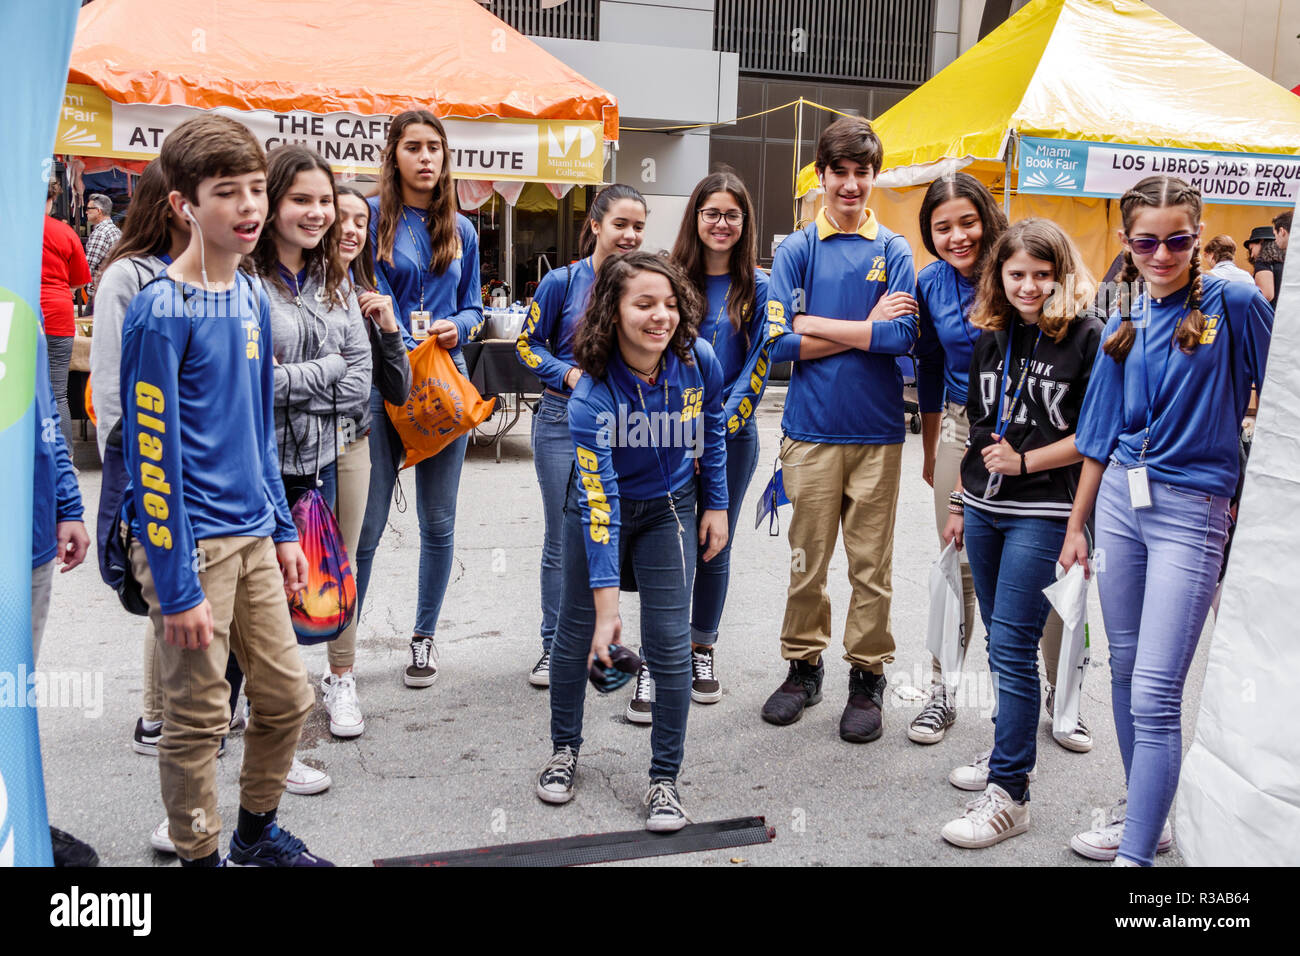 Miami Miami Florida-Dade College Book Fair annual event booths stalls vendors booksellers books sale shopping bean bag toss teen boy girl student watc Stock Photo